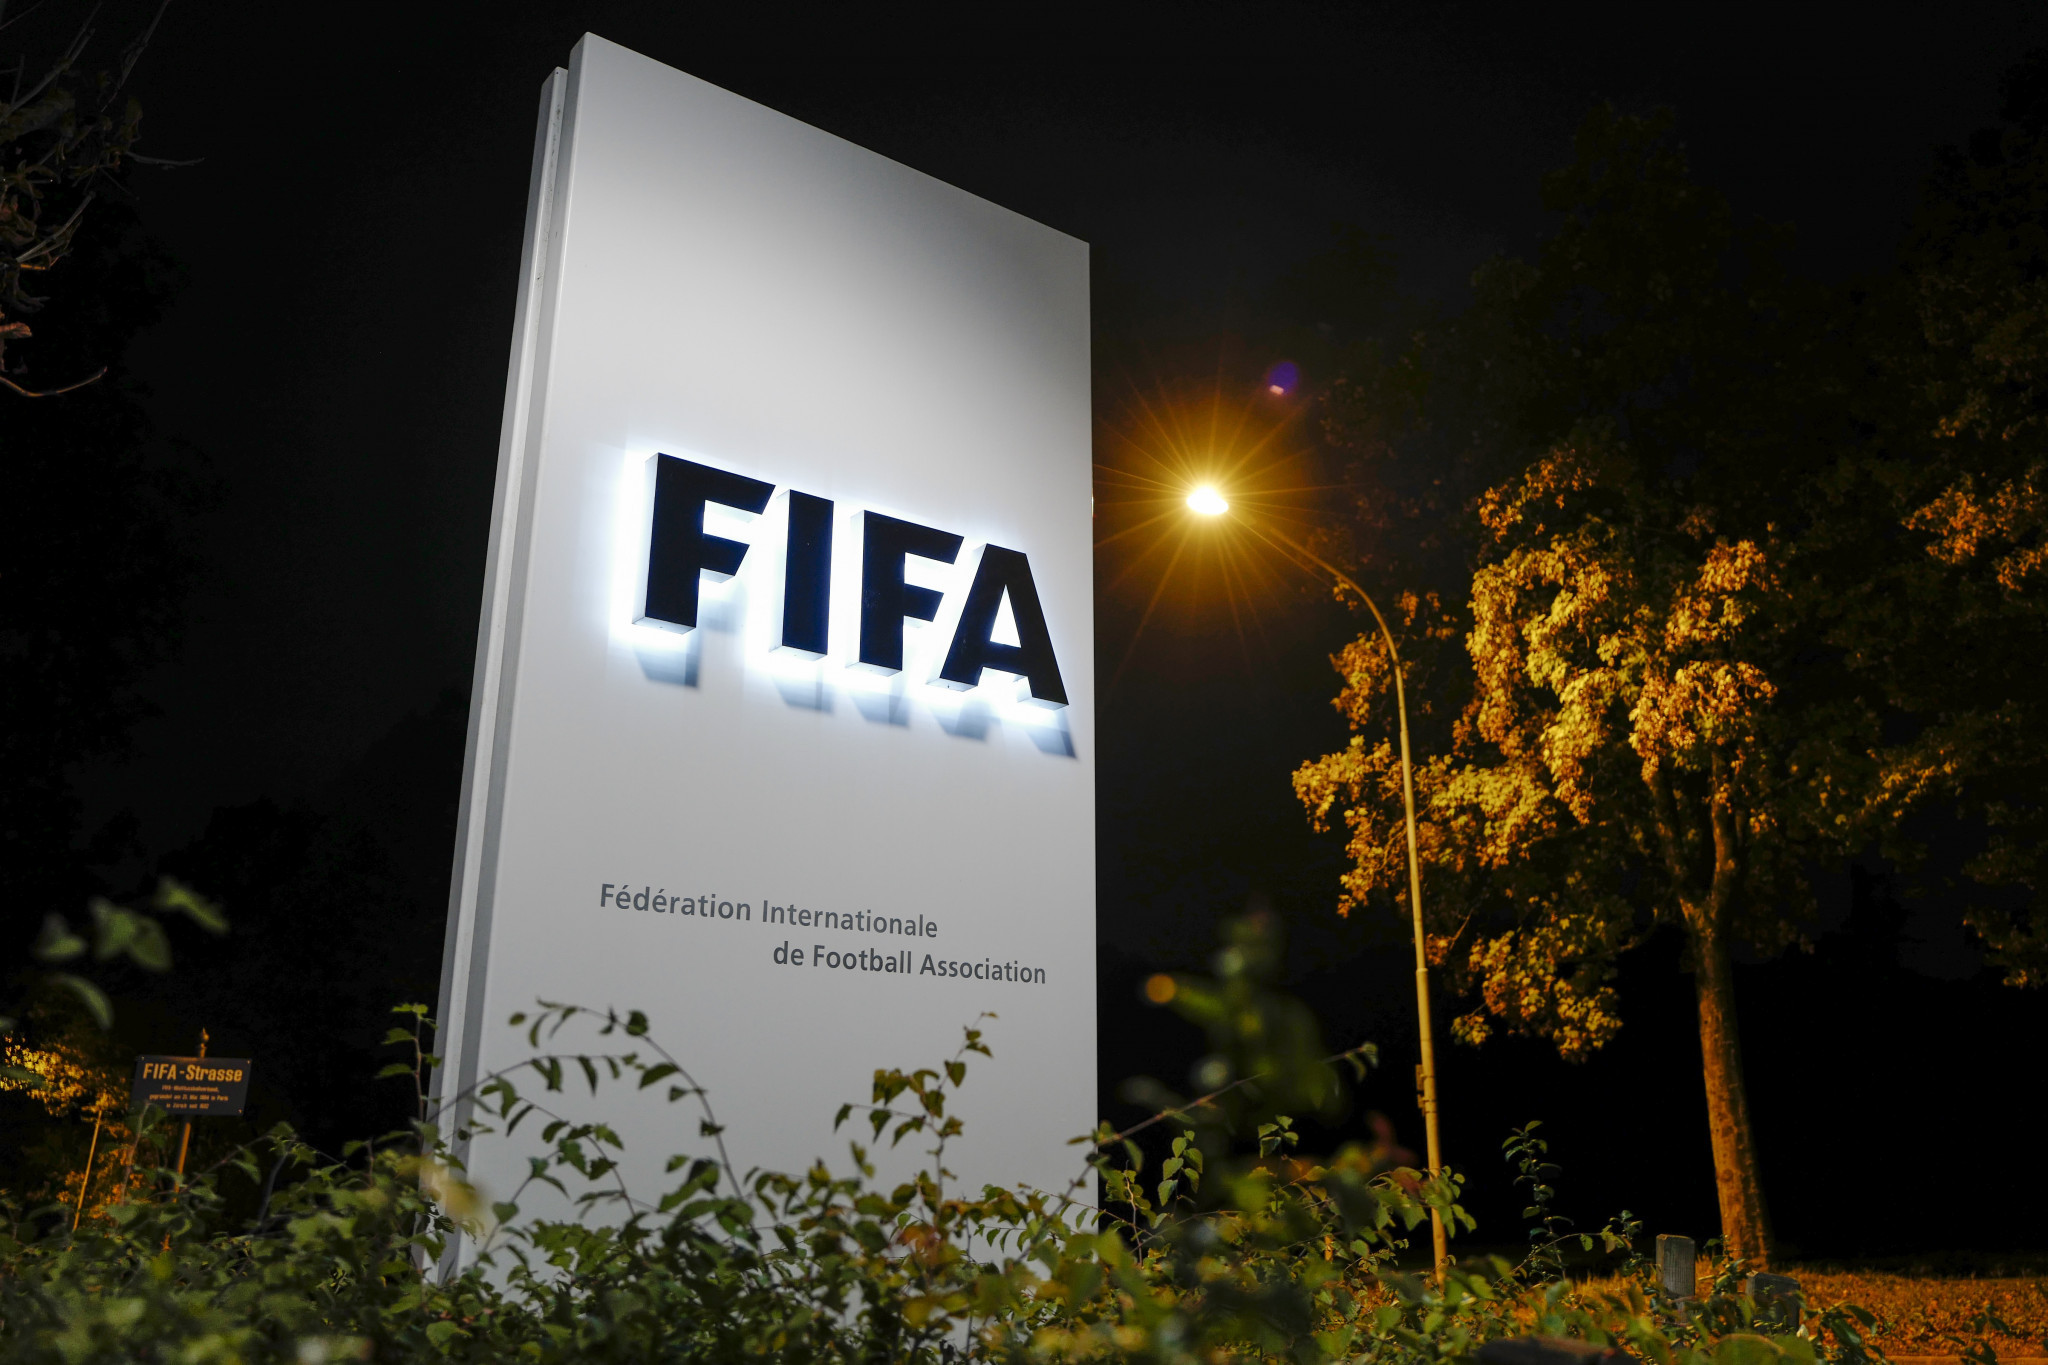 """FIFA """"excited about the future in gaming and esports"""" as it looks to expand its presence in the industry"""